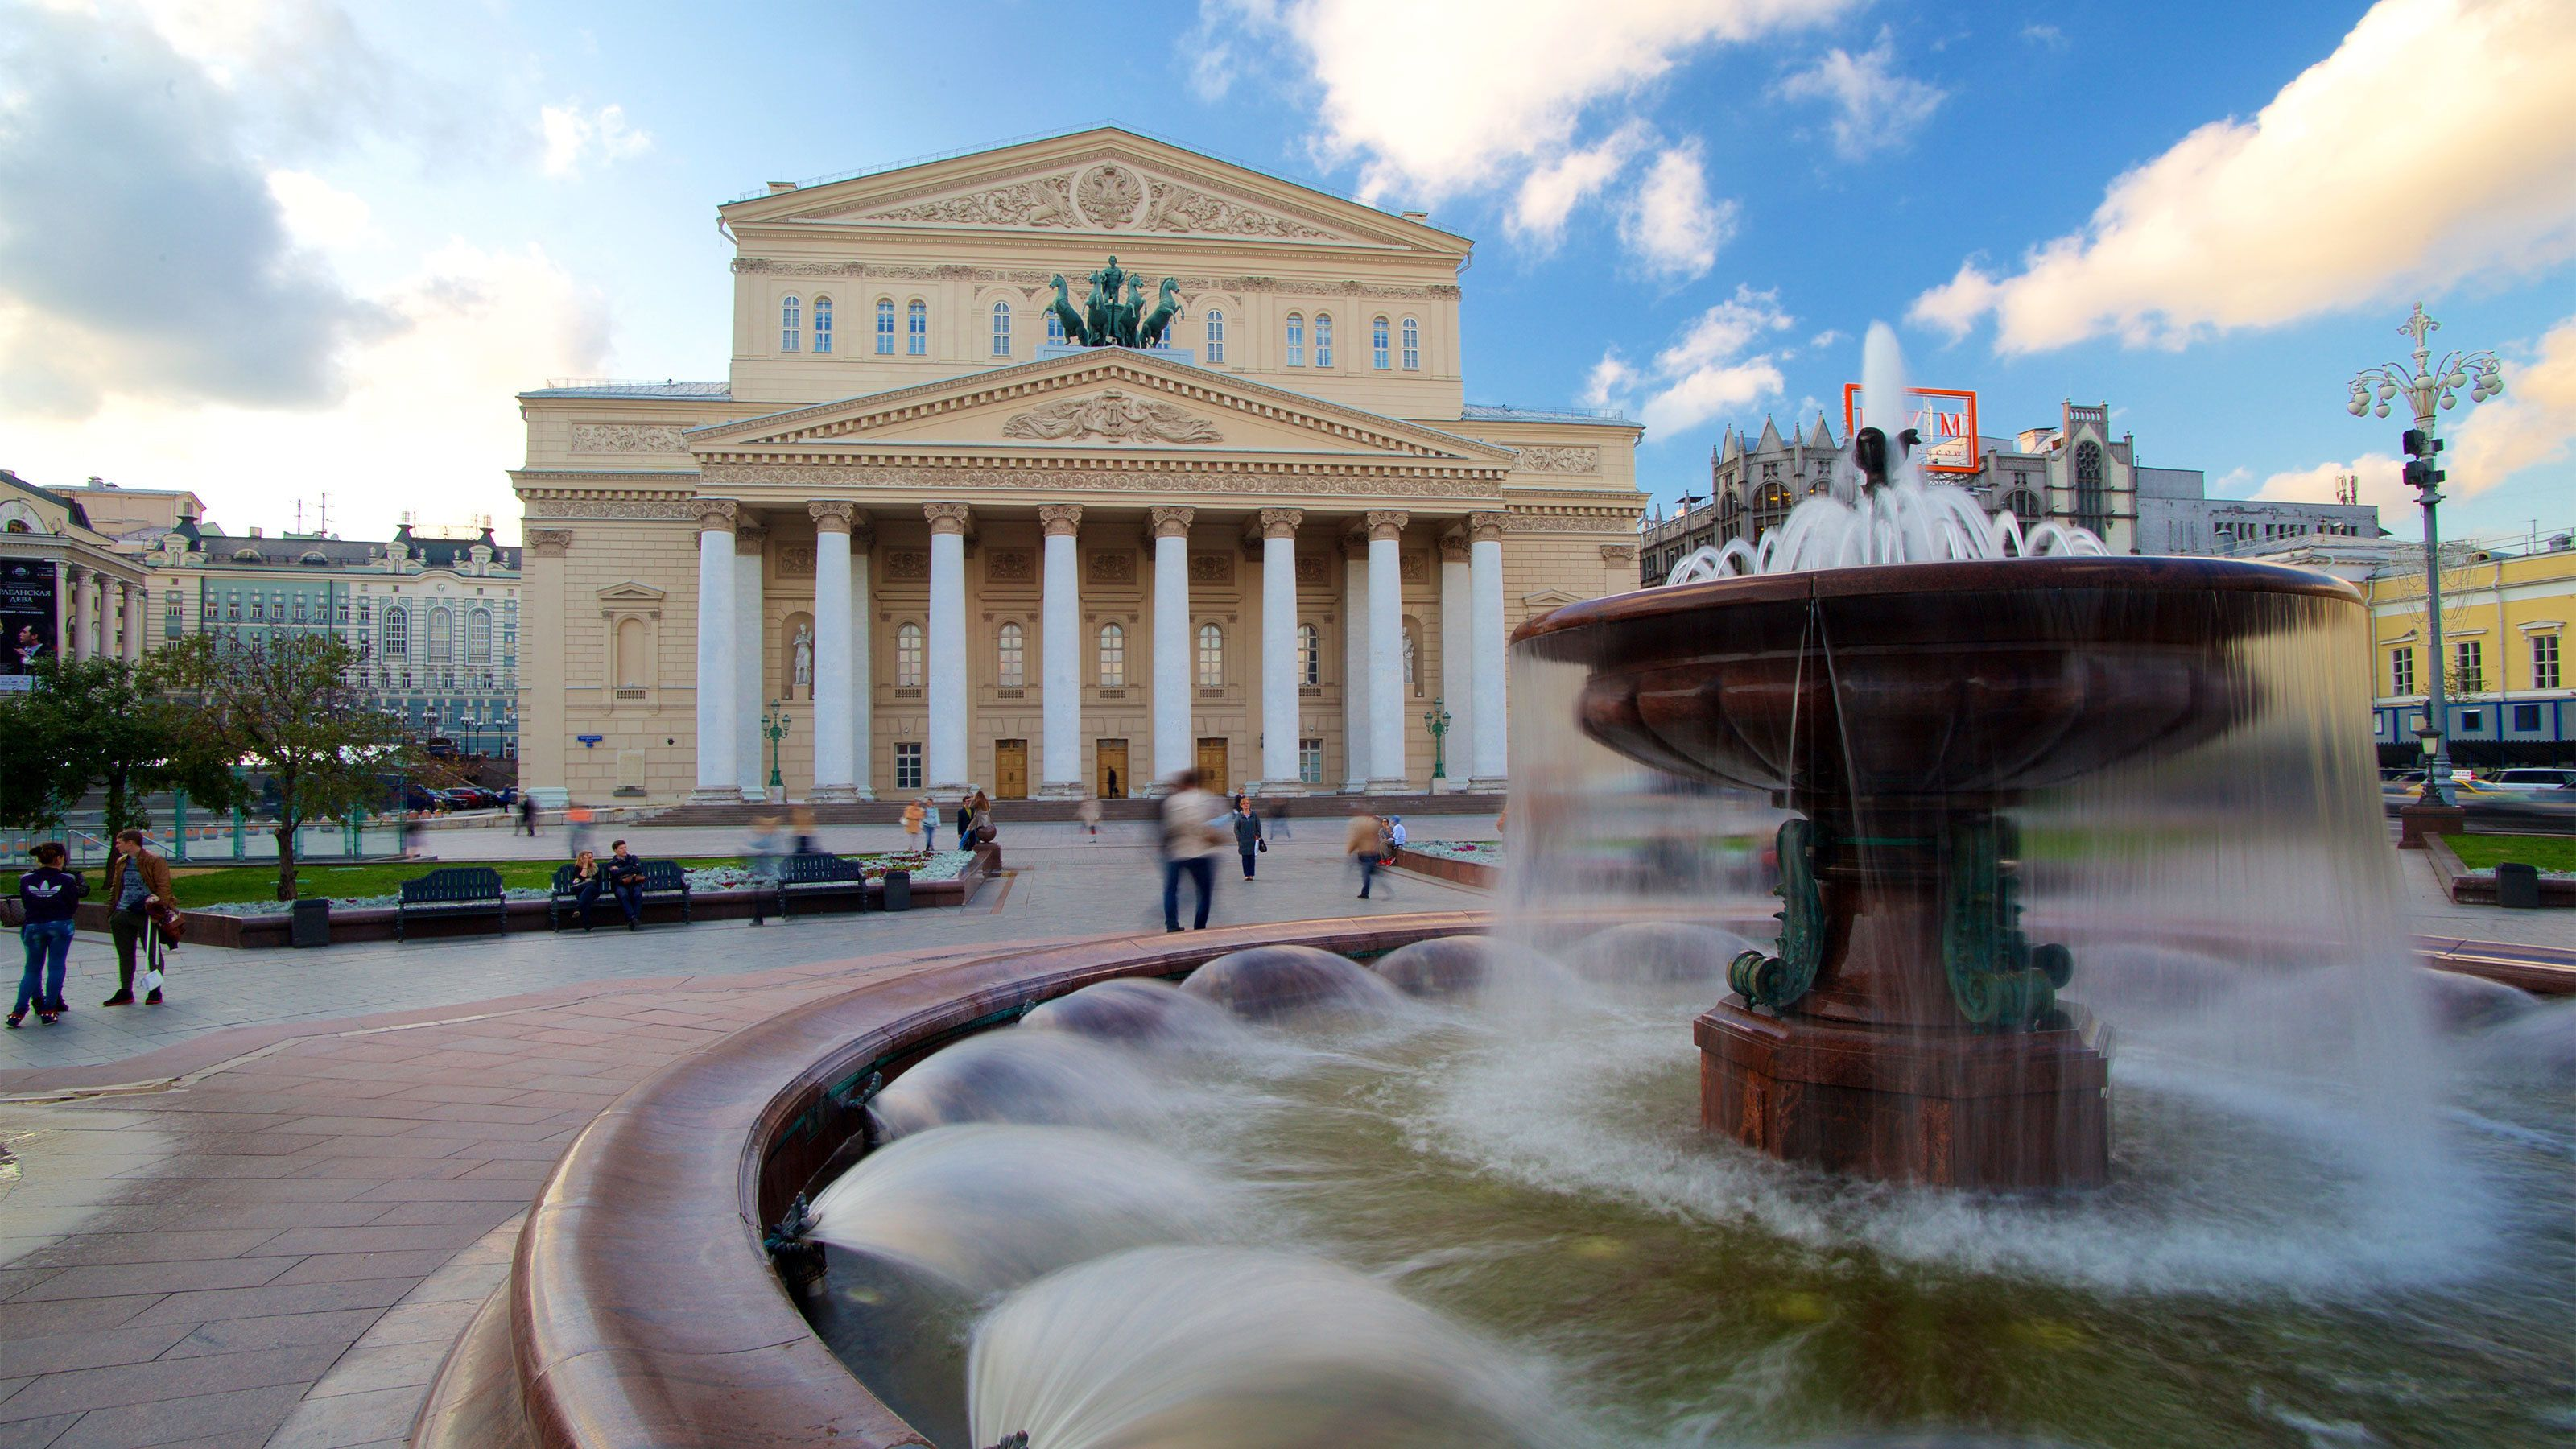 A fountain outside a classical style building in Moscow